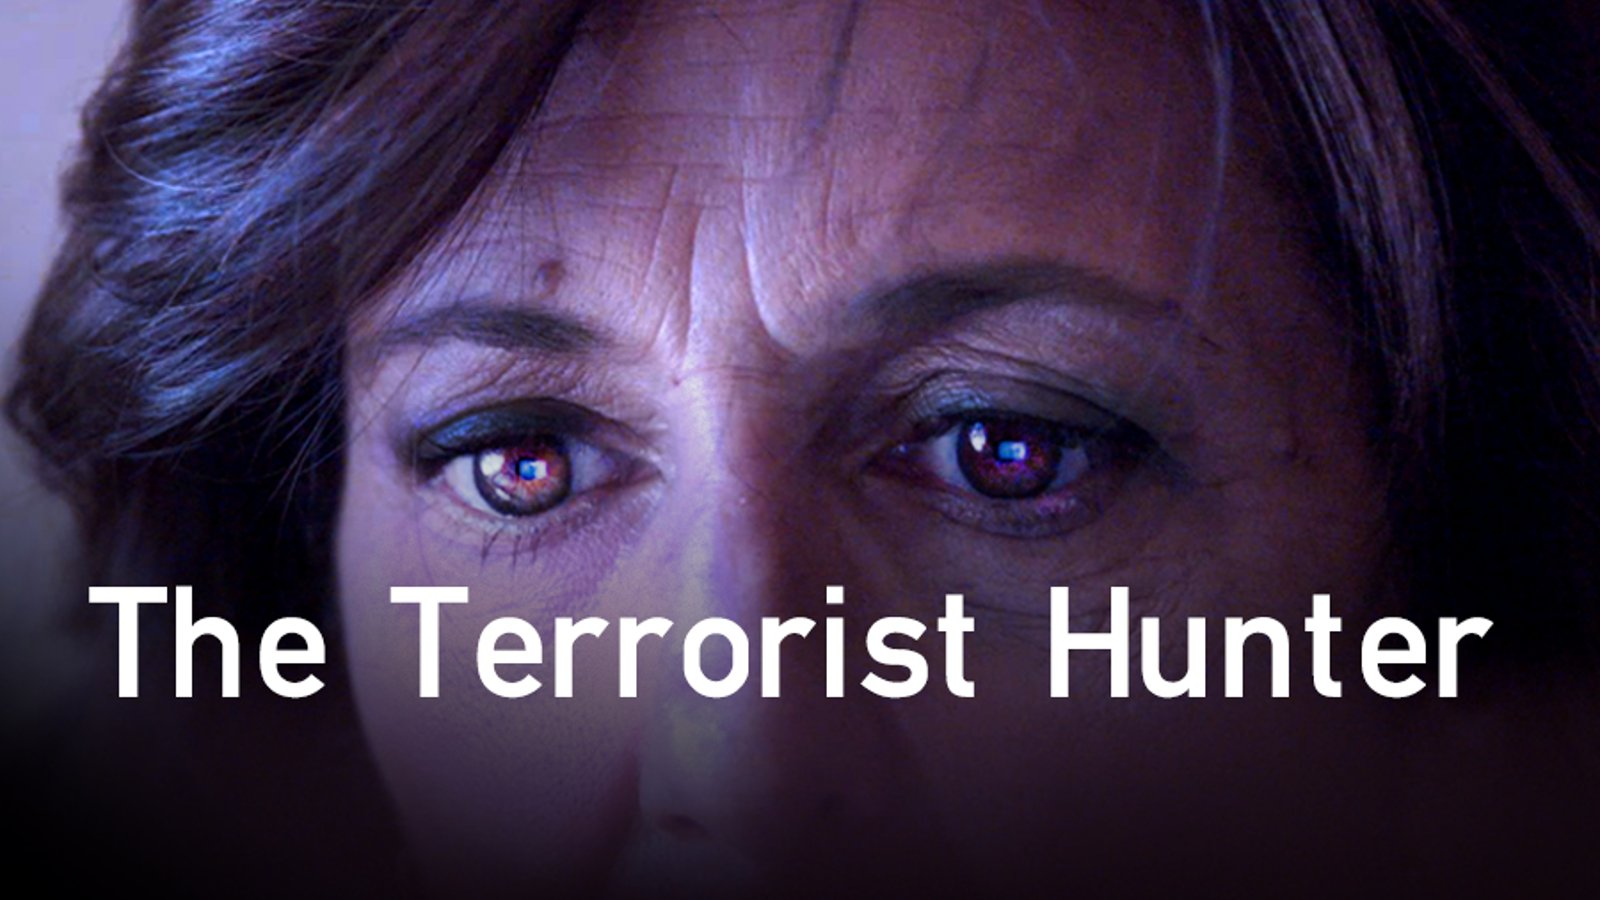 The Terrorist Hunter - The Career of a Controversial Spy